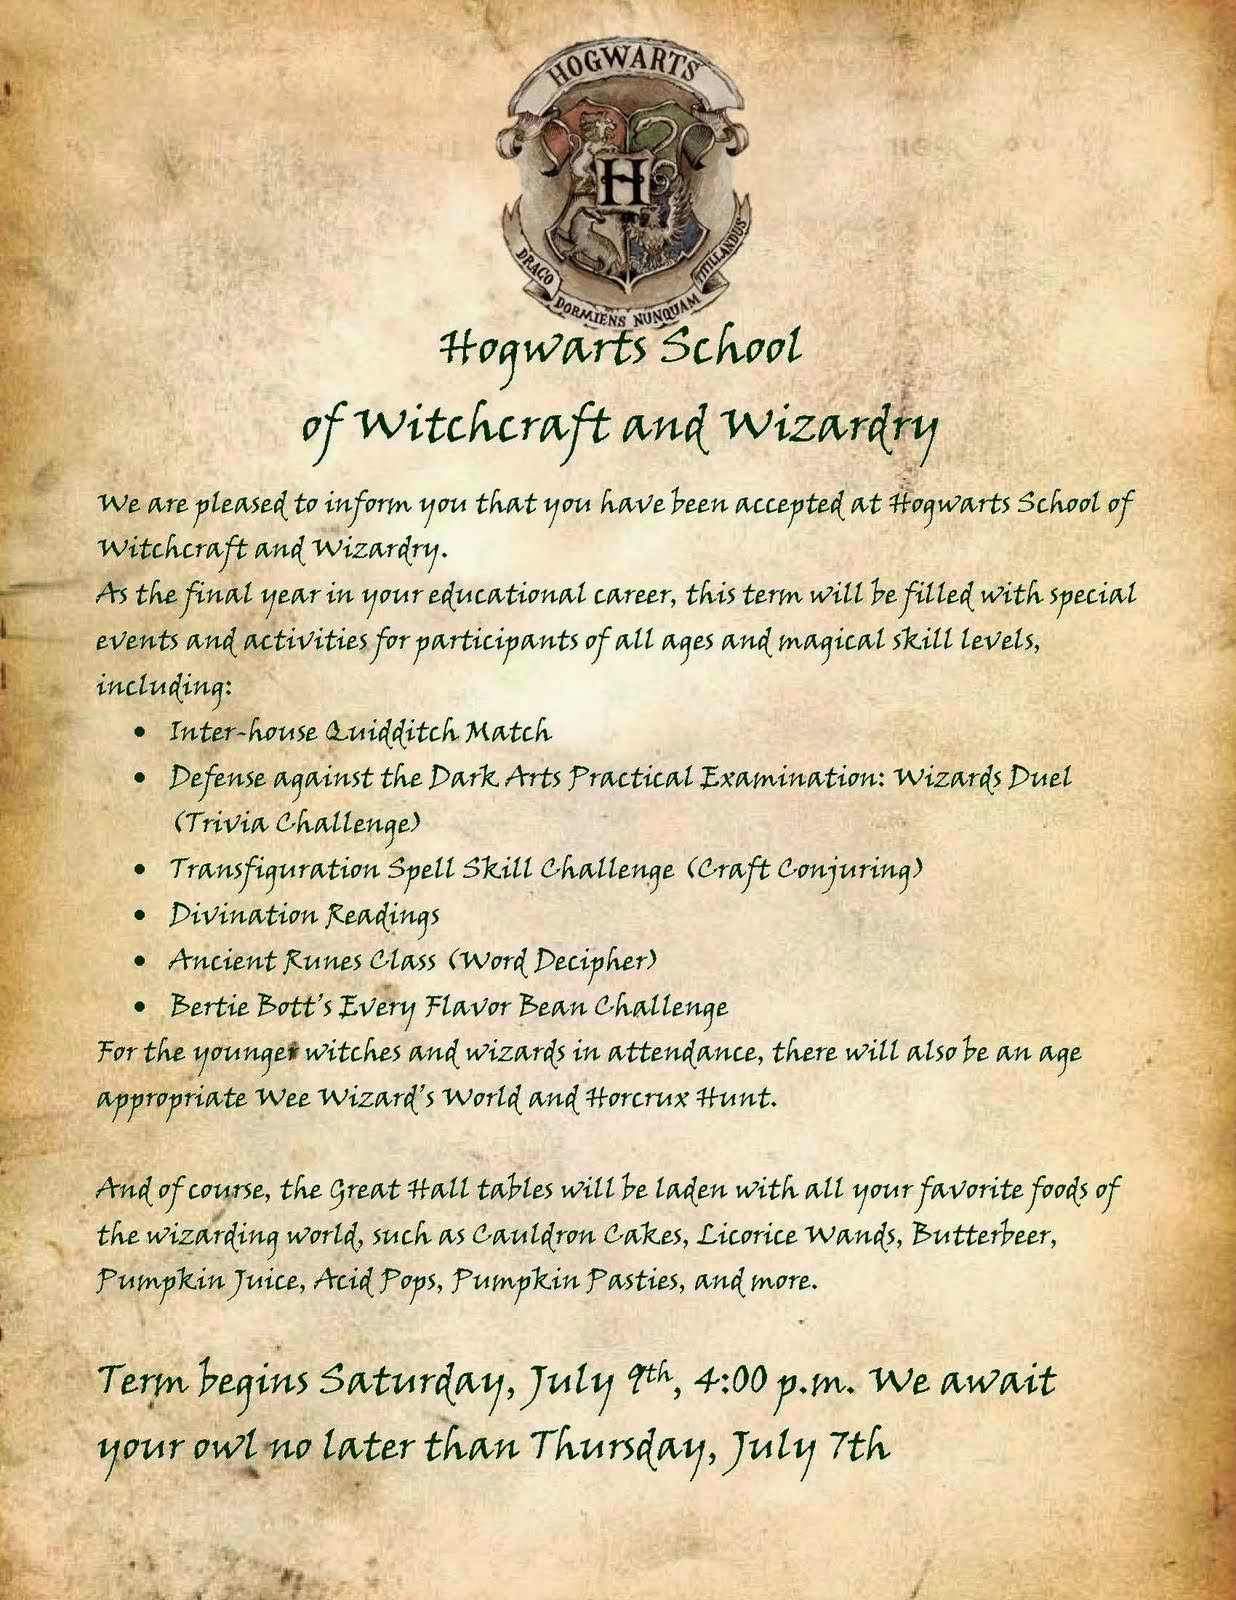 Letter from Hogwarts School of Witchcraft and Wizardry